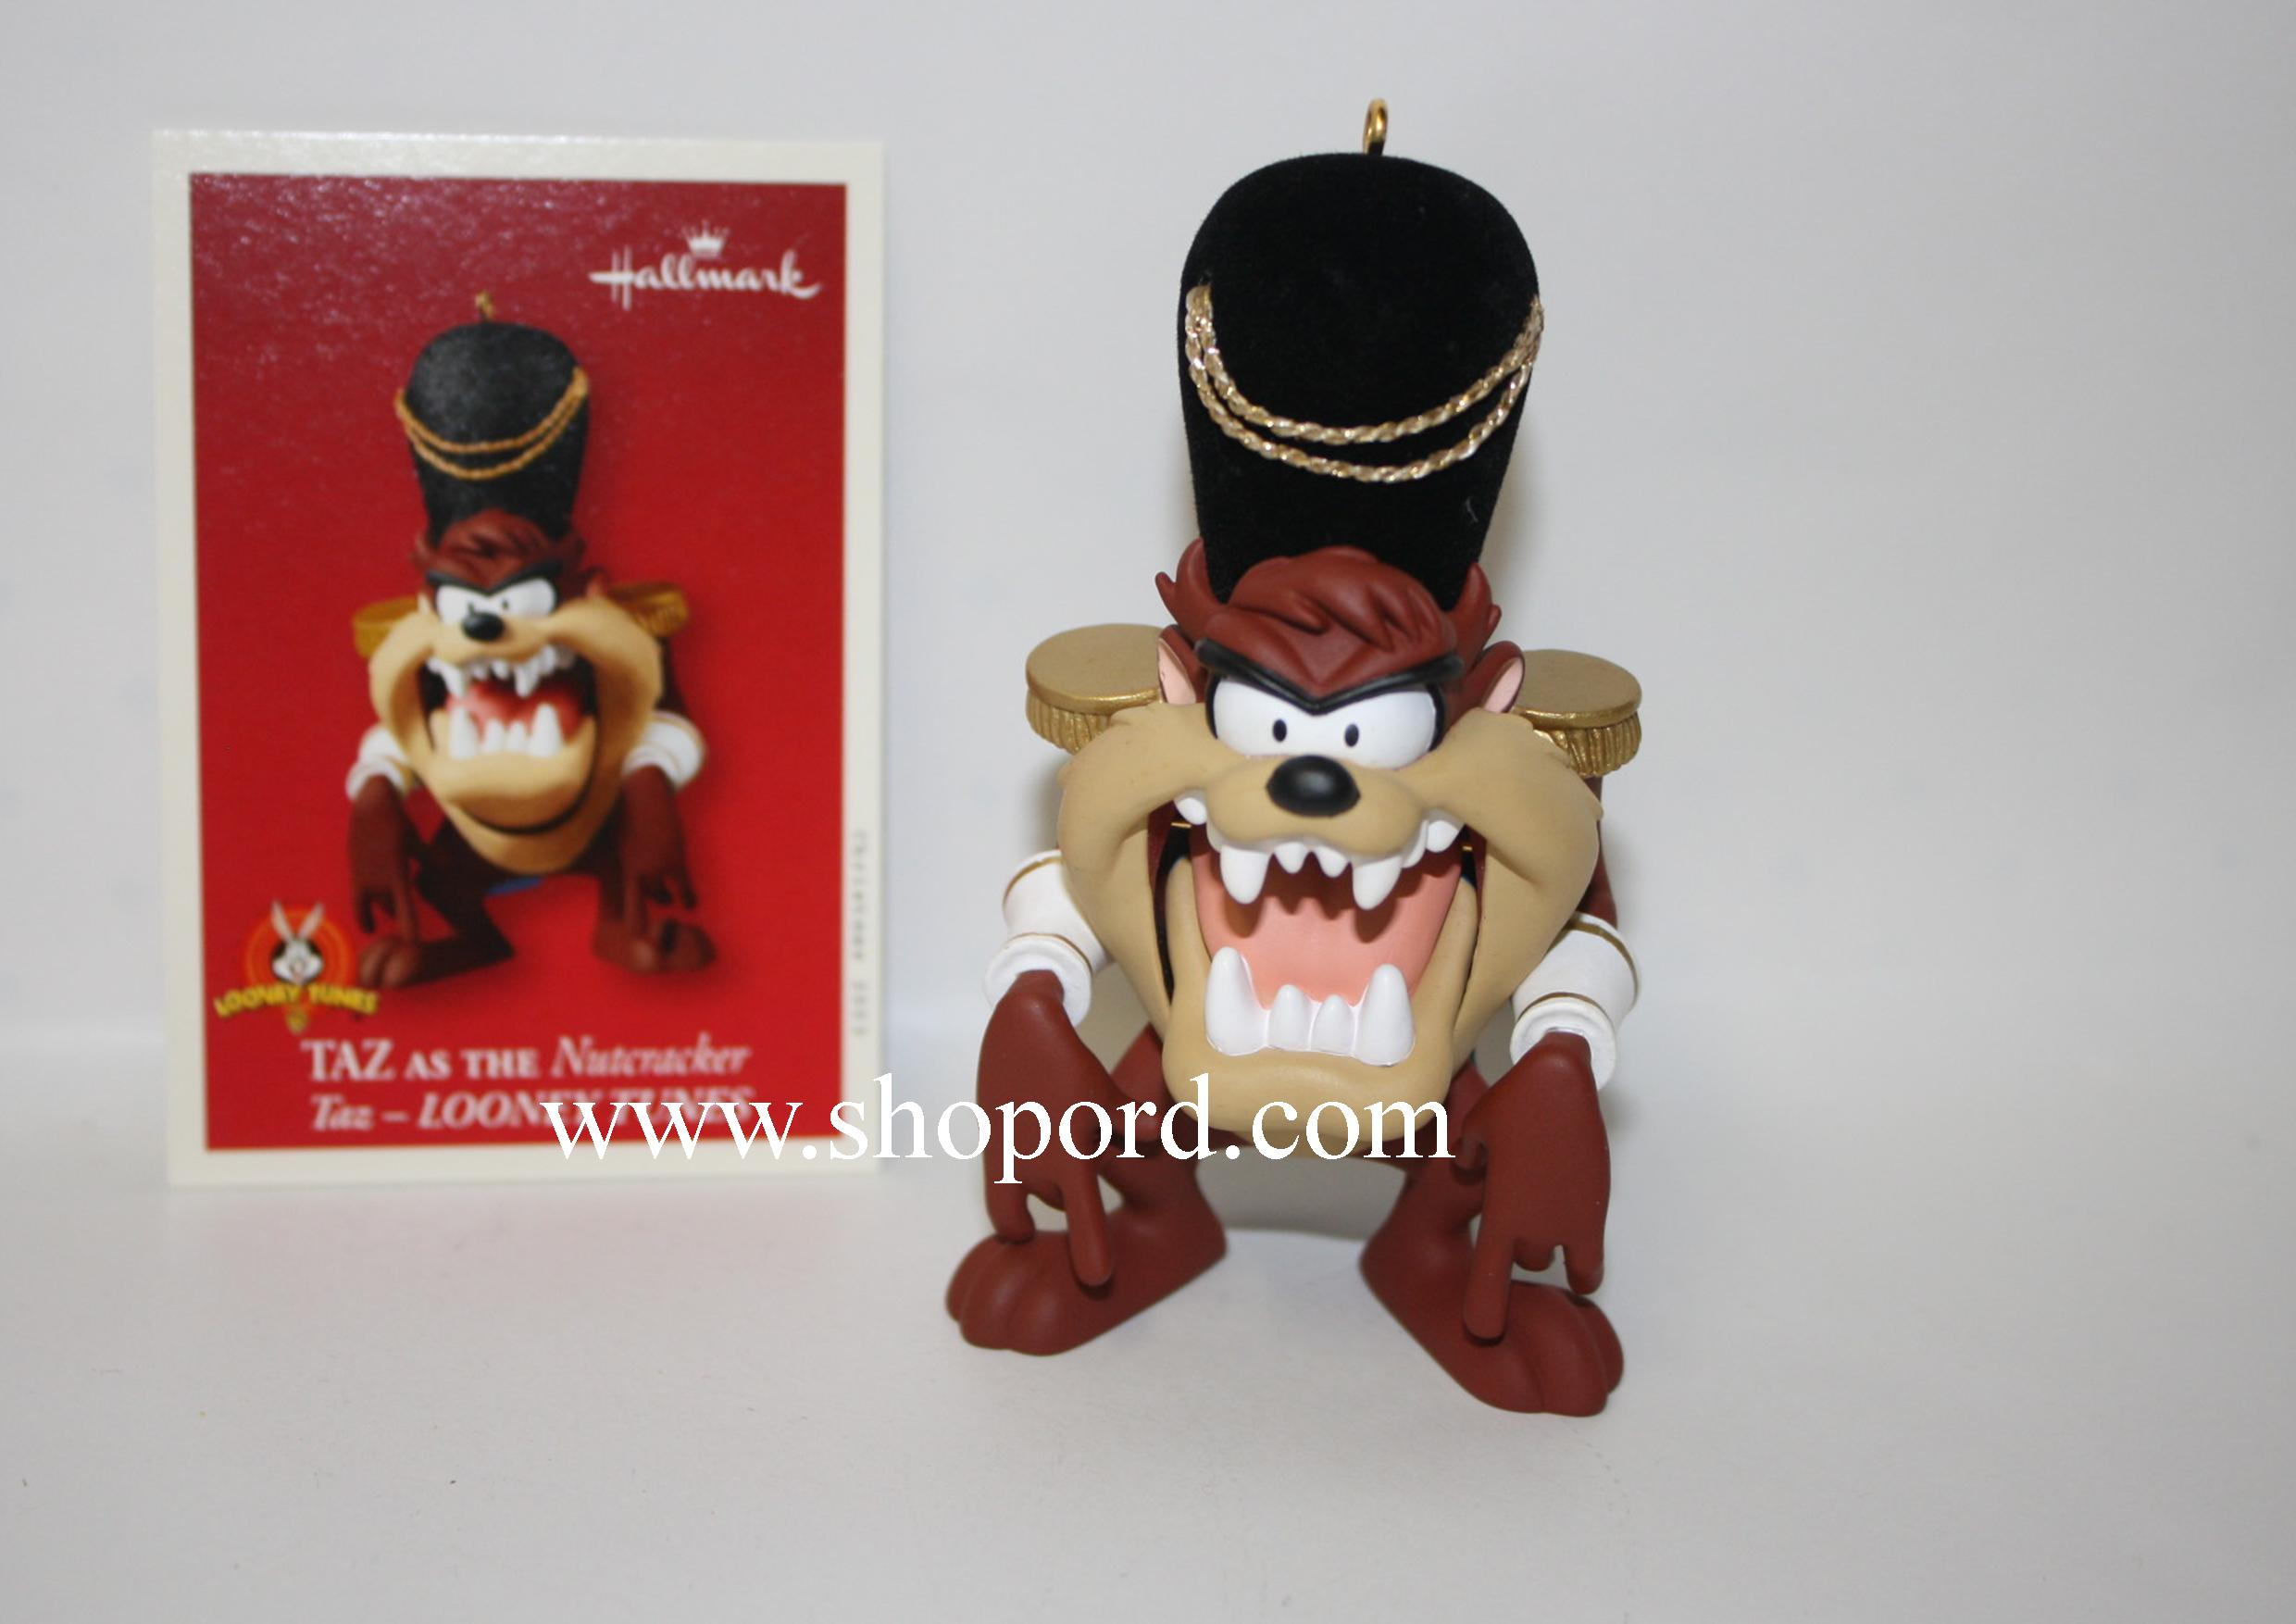 Hallmark 2003 Taz As The Nutcracker Ornament Looney Tunes QXI8269